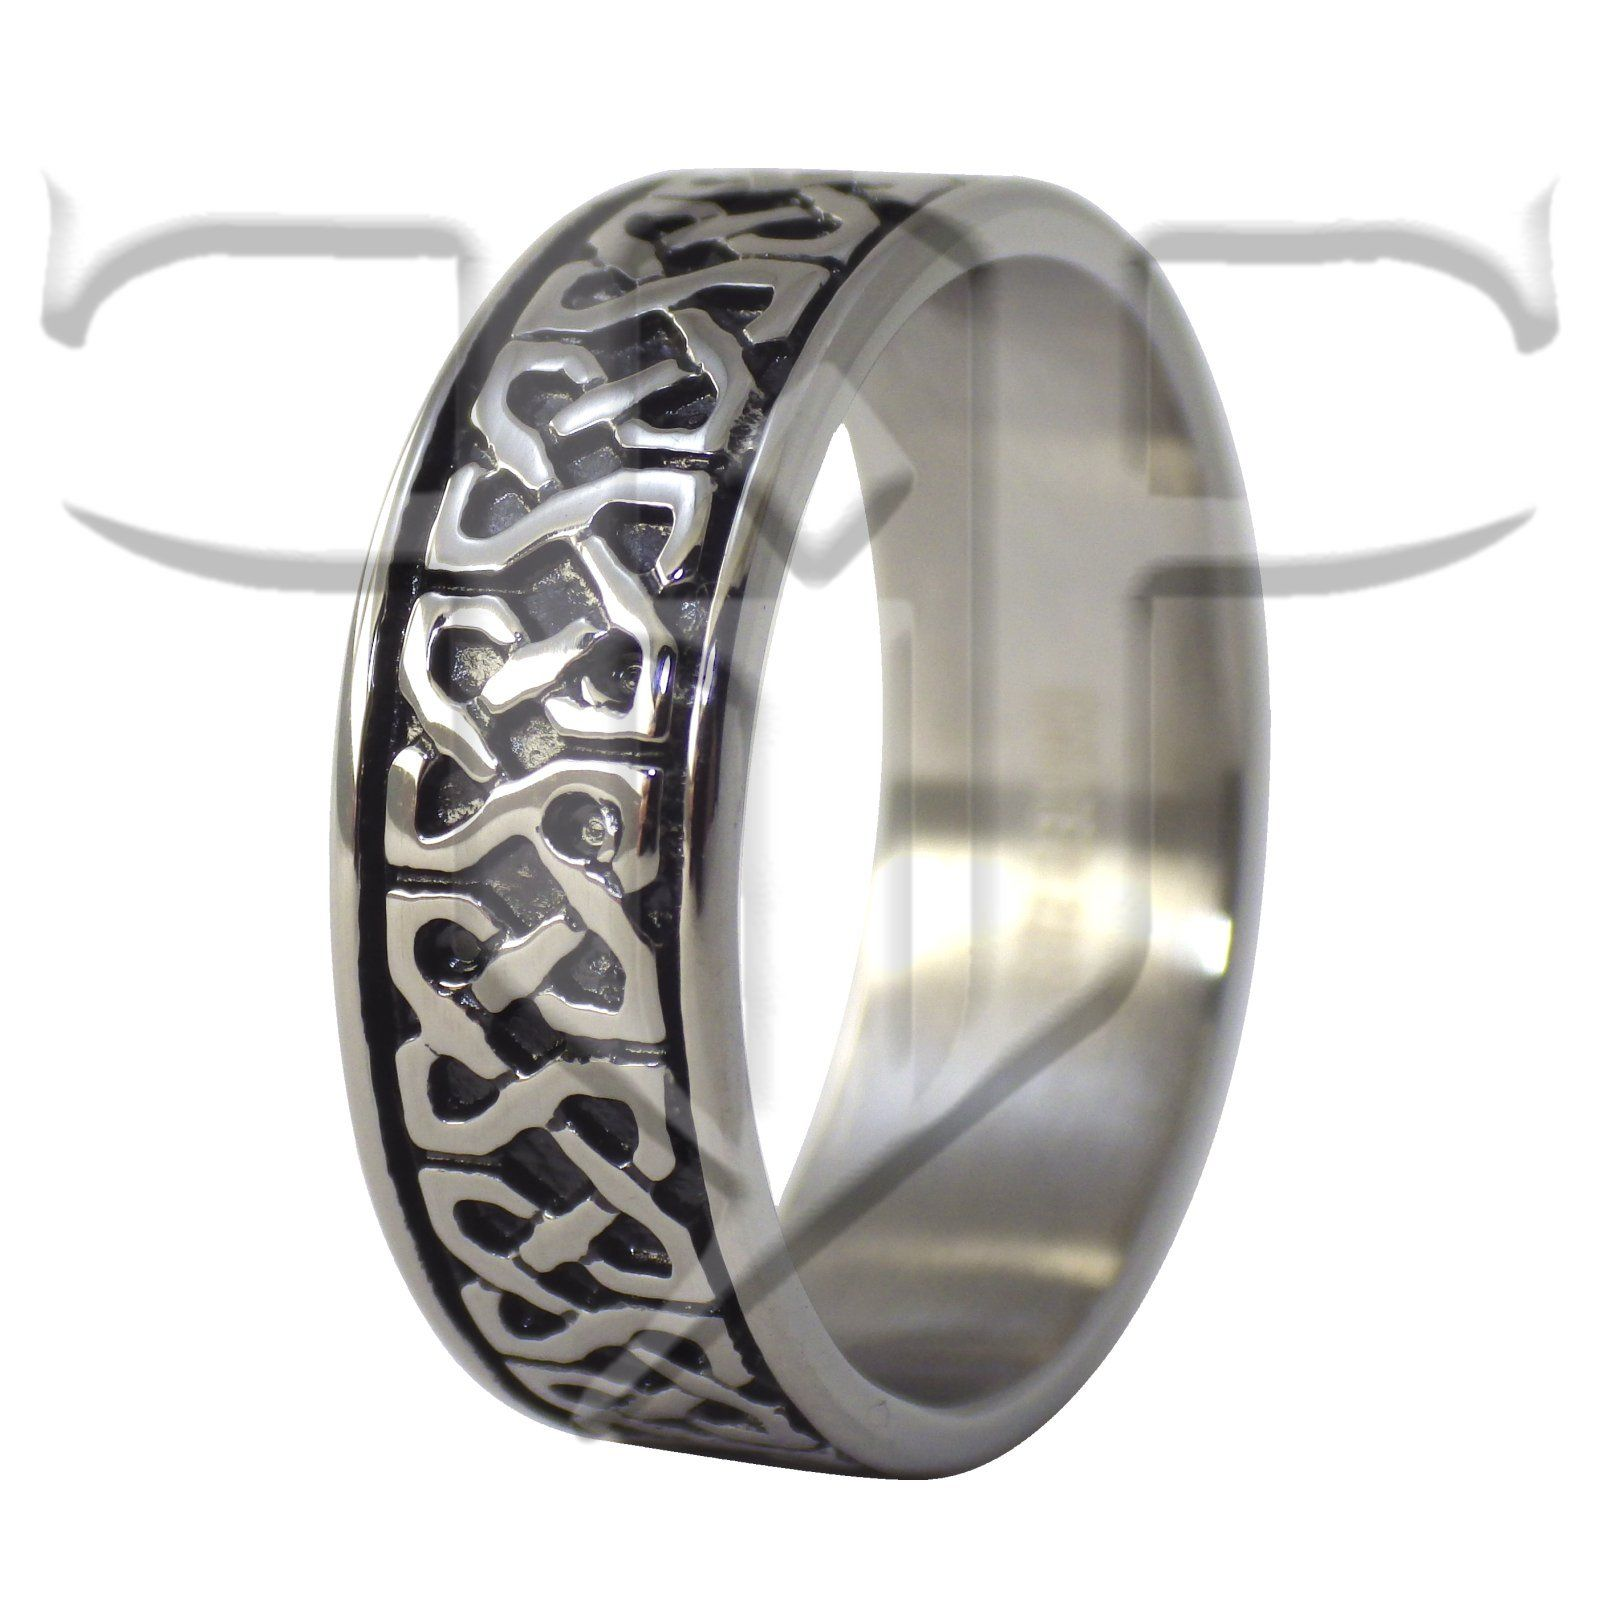 celtic knot fashion ring stainless steel wedding band men s